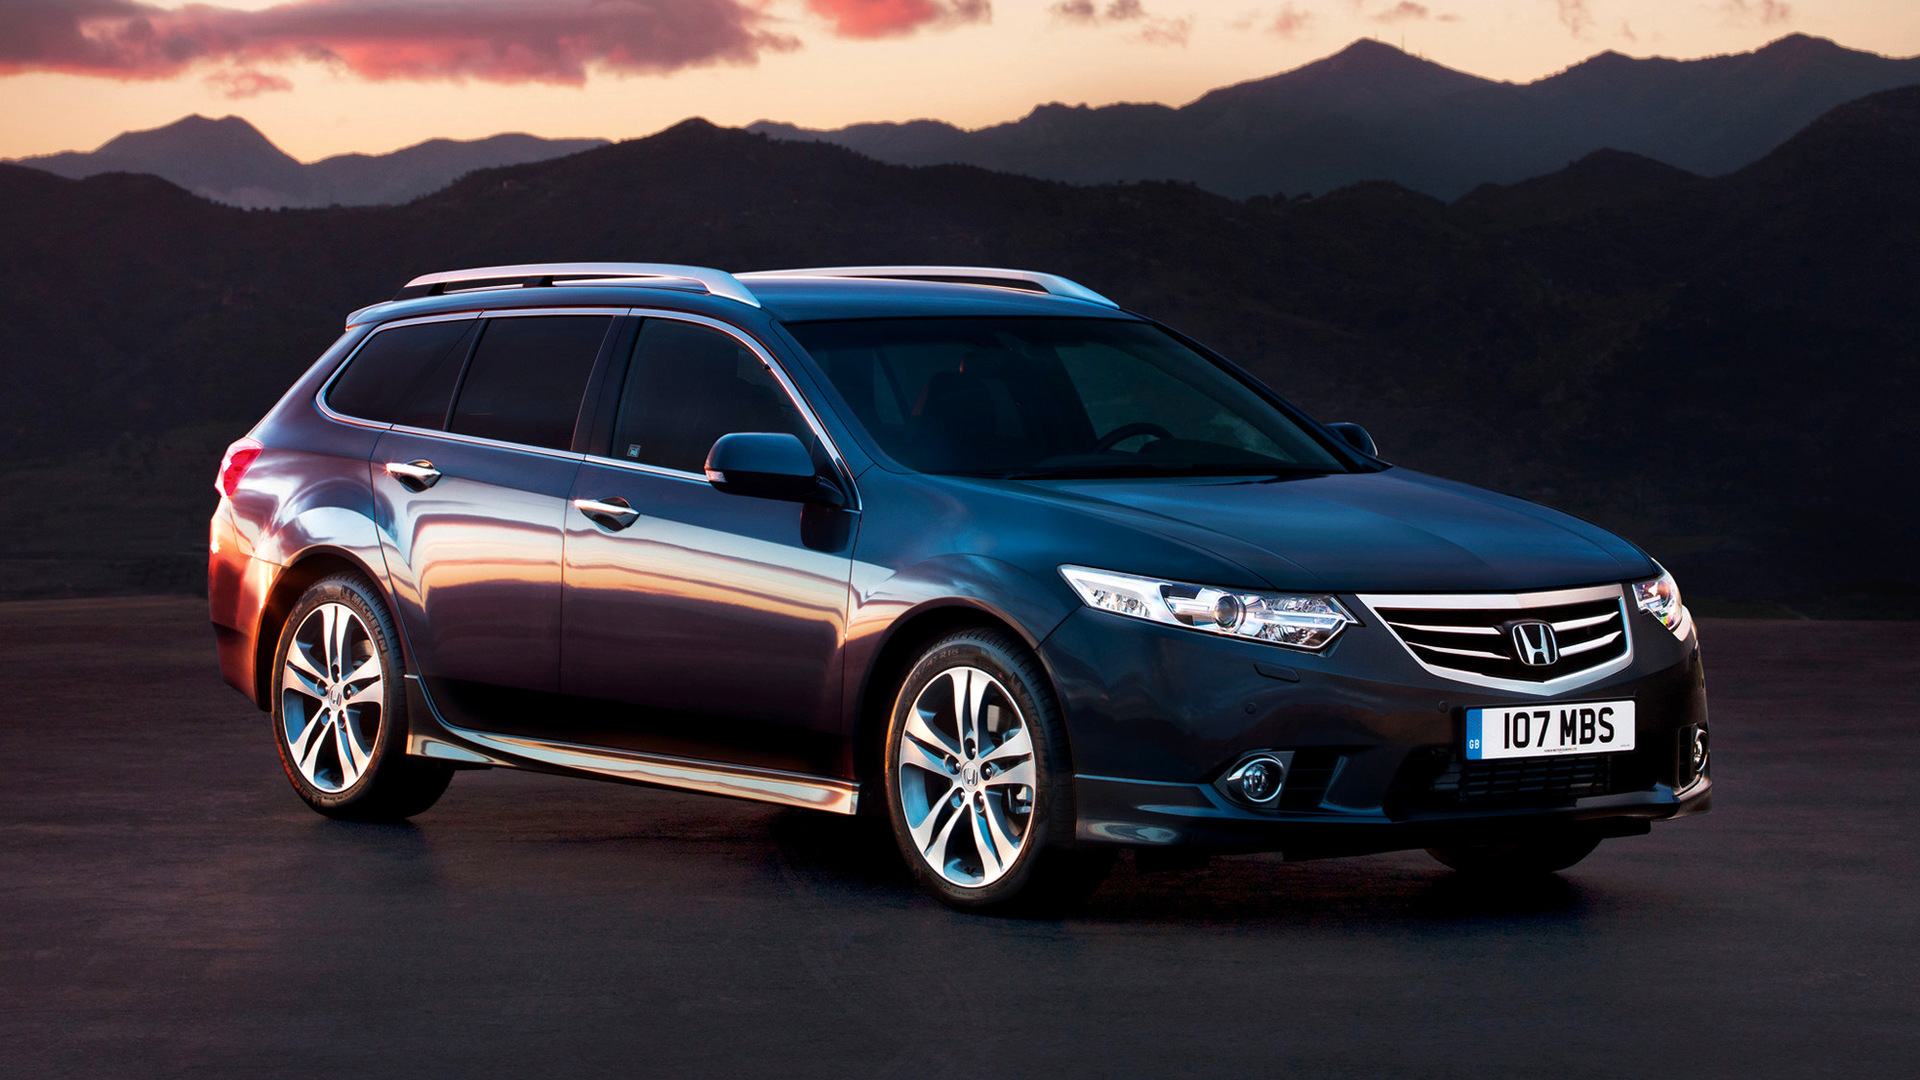 Honda Accord Type-S Tourer (2011) Wallpapers and HD Images ...